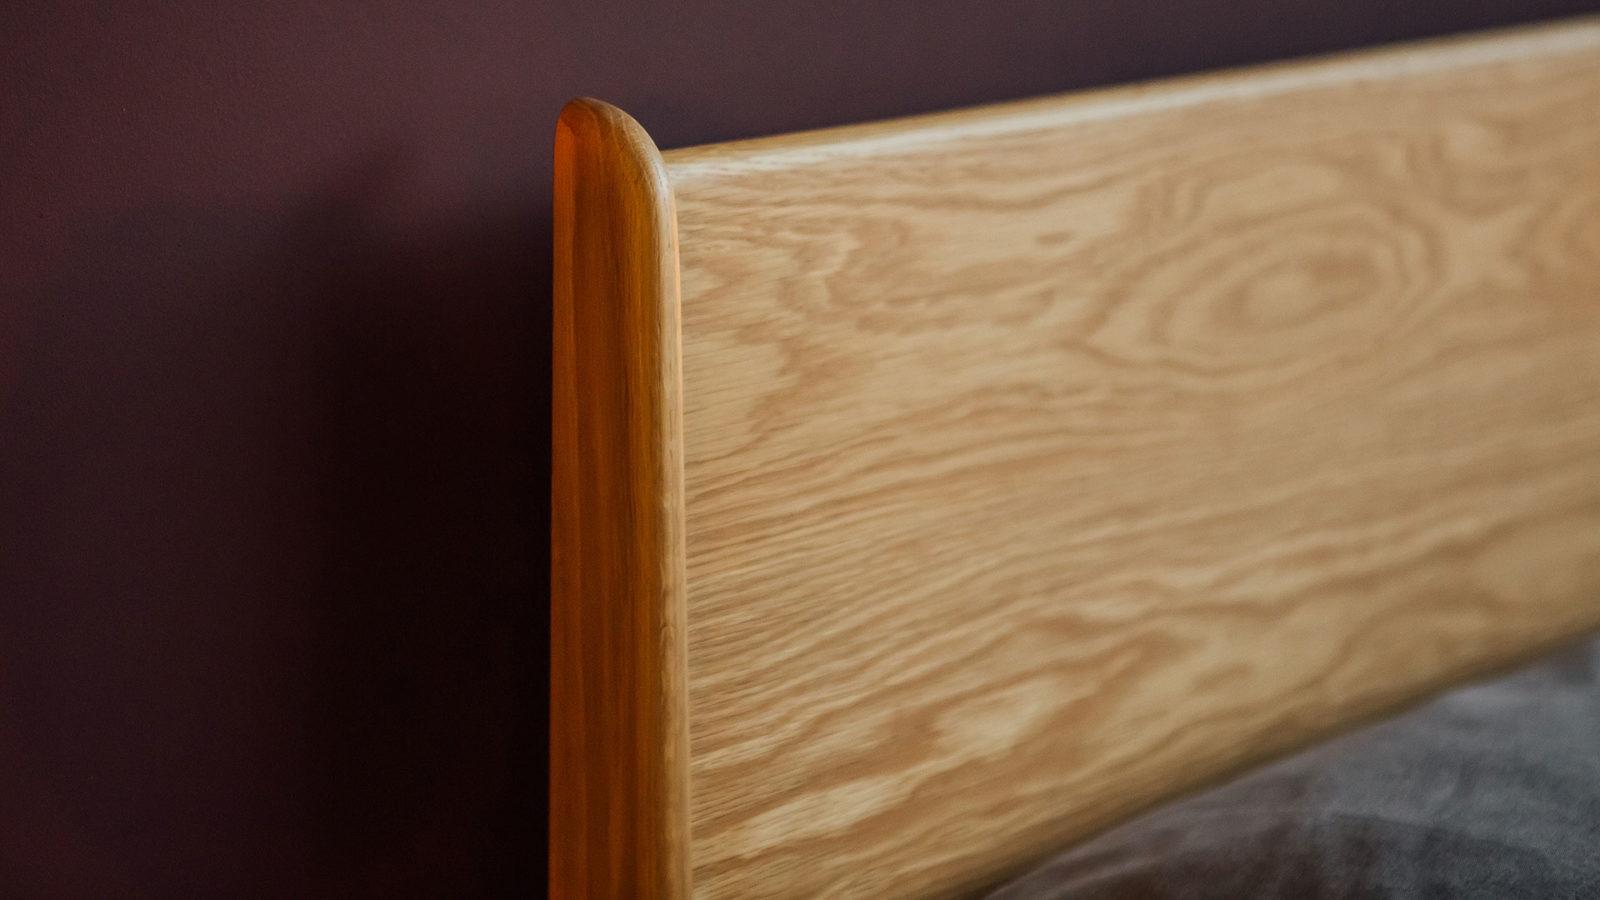 The Camden Bed - Solid Oak hand-crafted Headboard